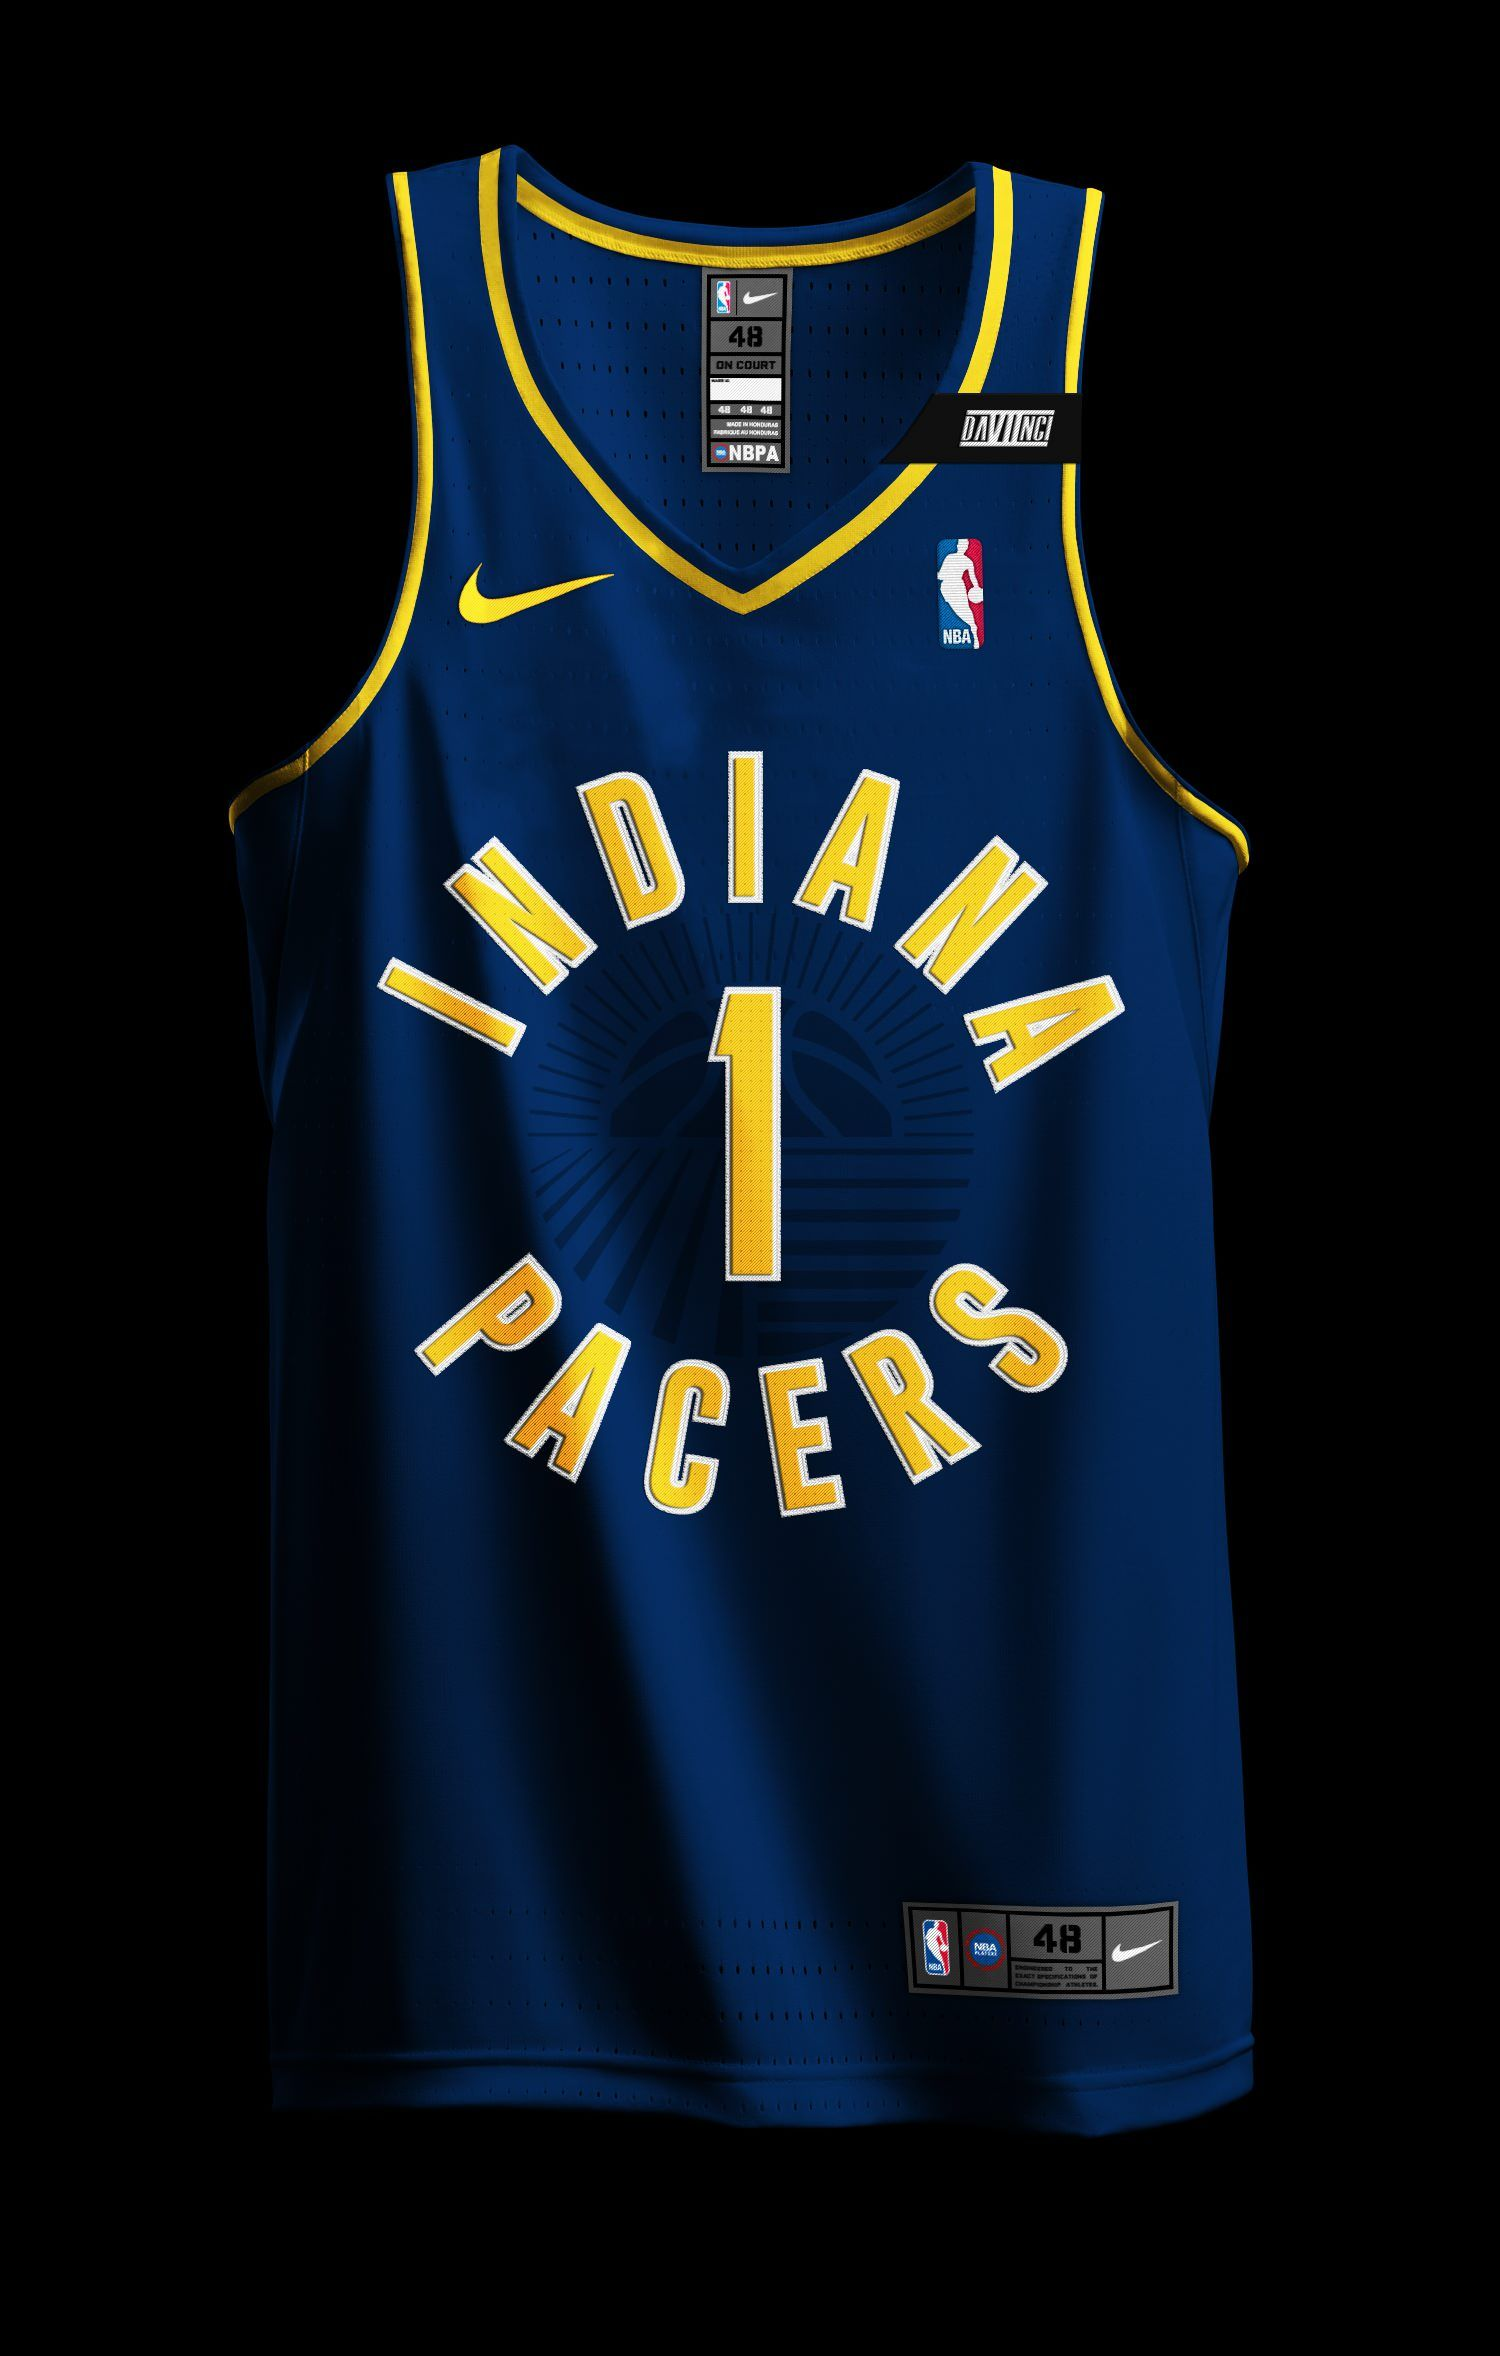 ab656d9b1ae My Post-Uniform Unveiling Nike x Indiana Pacers Jersey Concepts. NBA x NIKE  Redesign Project ...